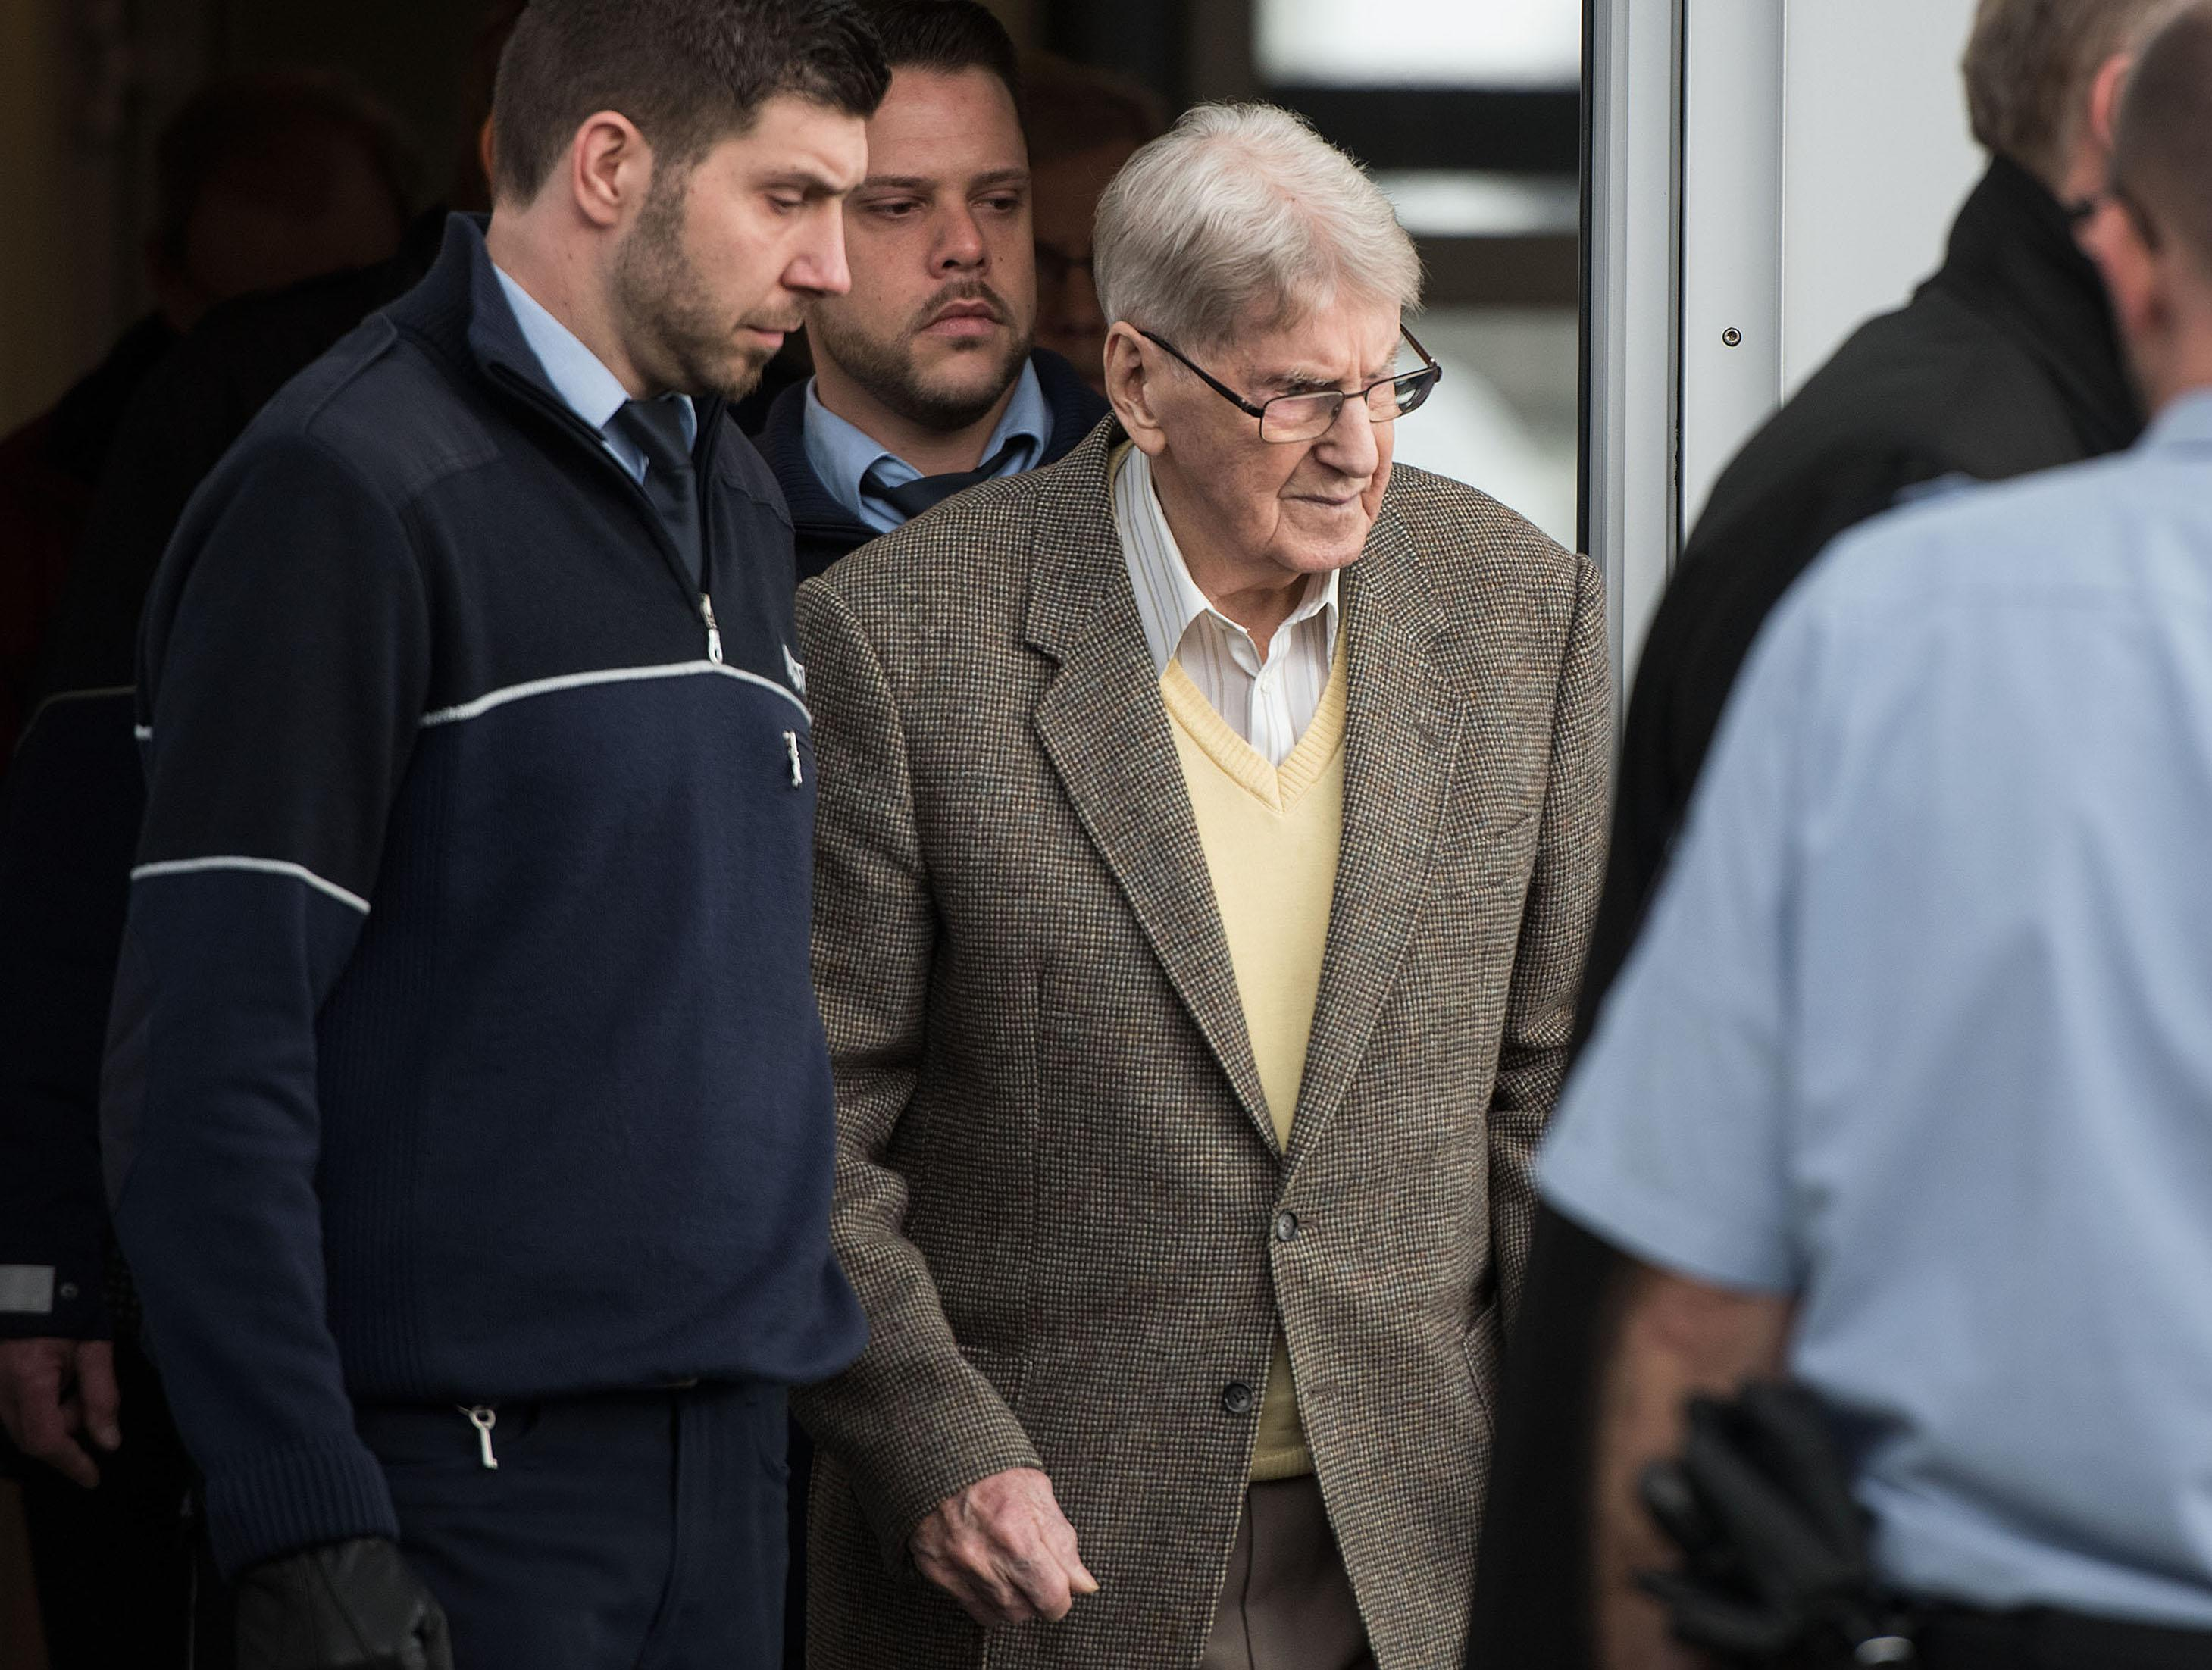 Trial of Reinhold Hanning, former Auschwitz guard, in Detmold, Germany